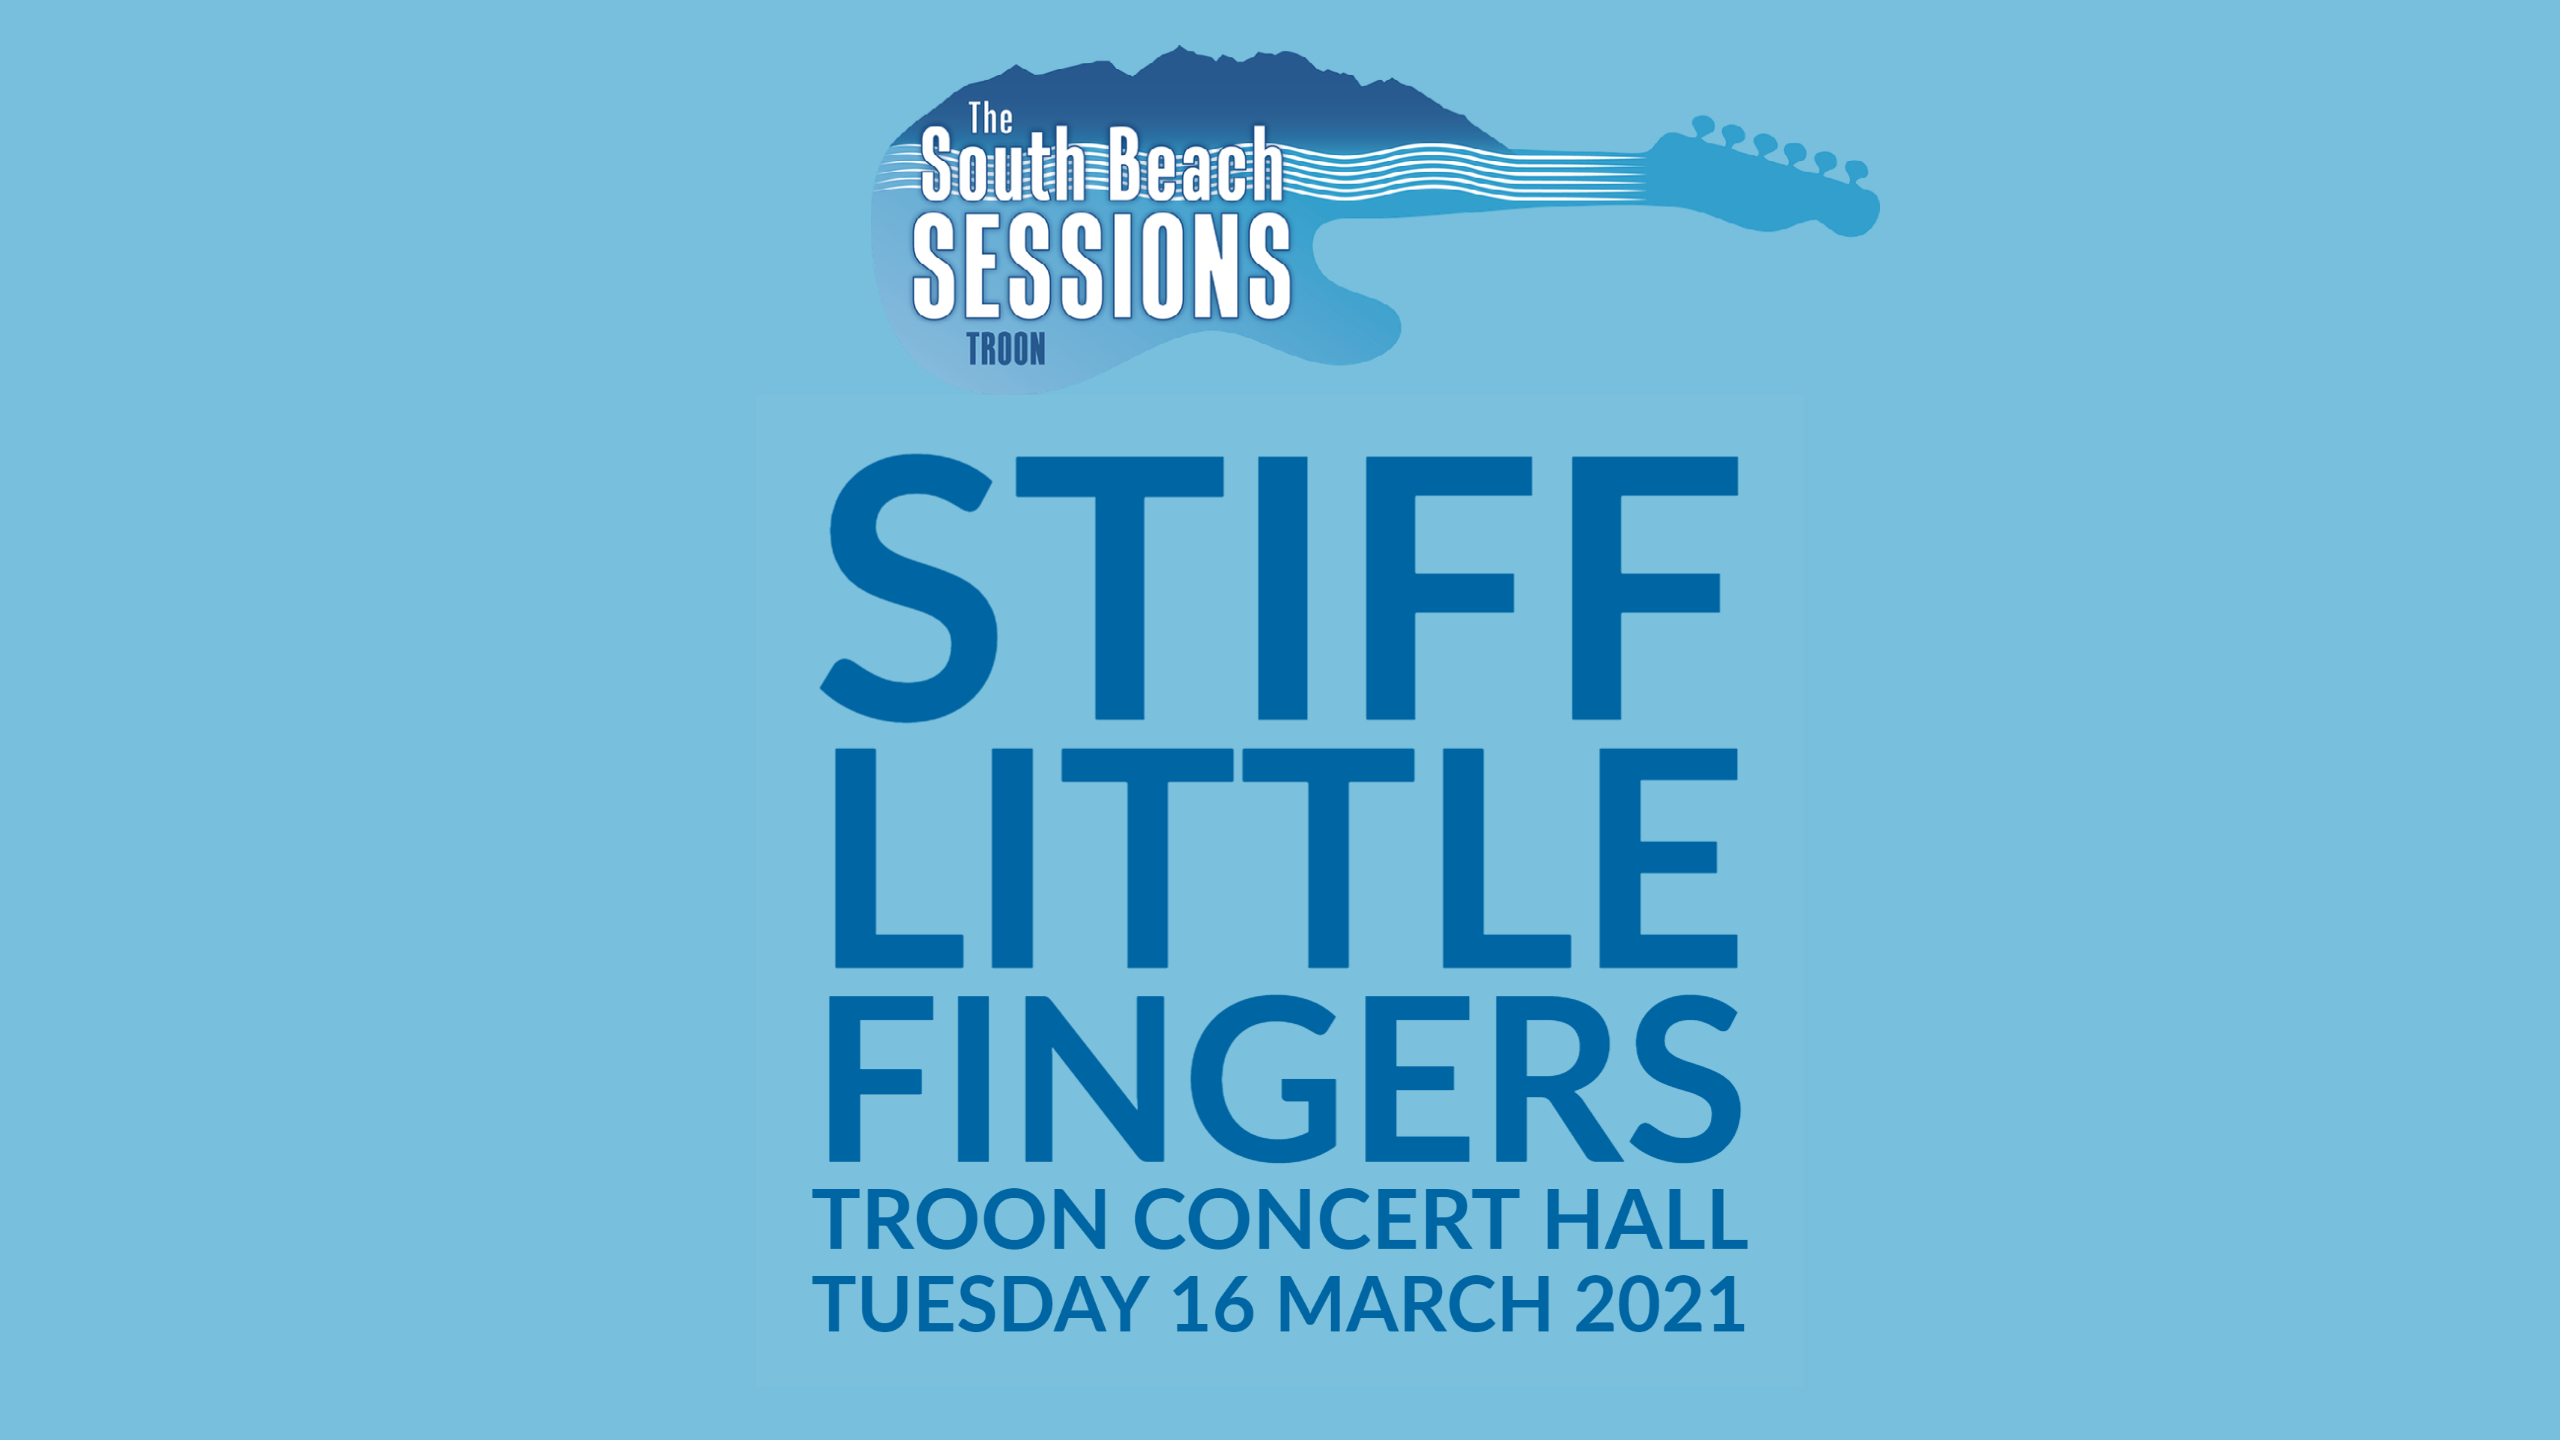 Sessions - Stiff Little Fingers - LIMITED AVAILABILITY